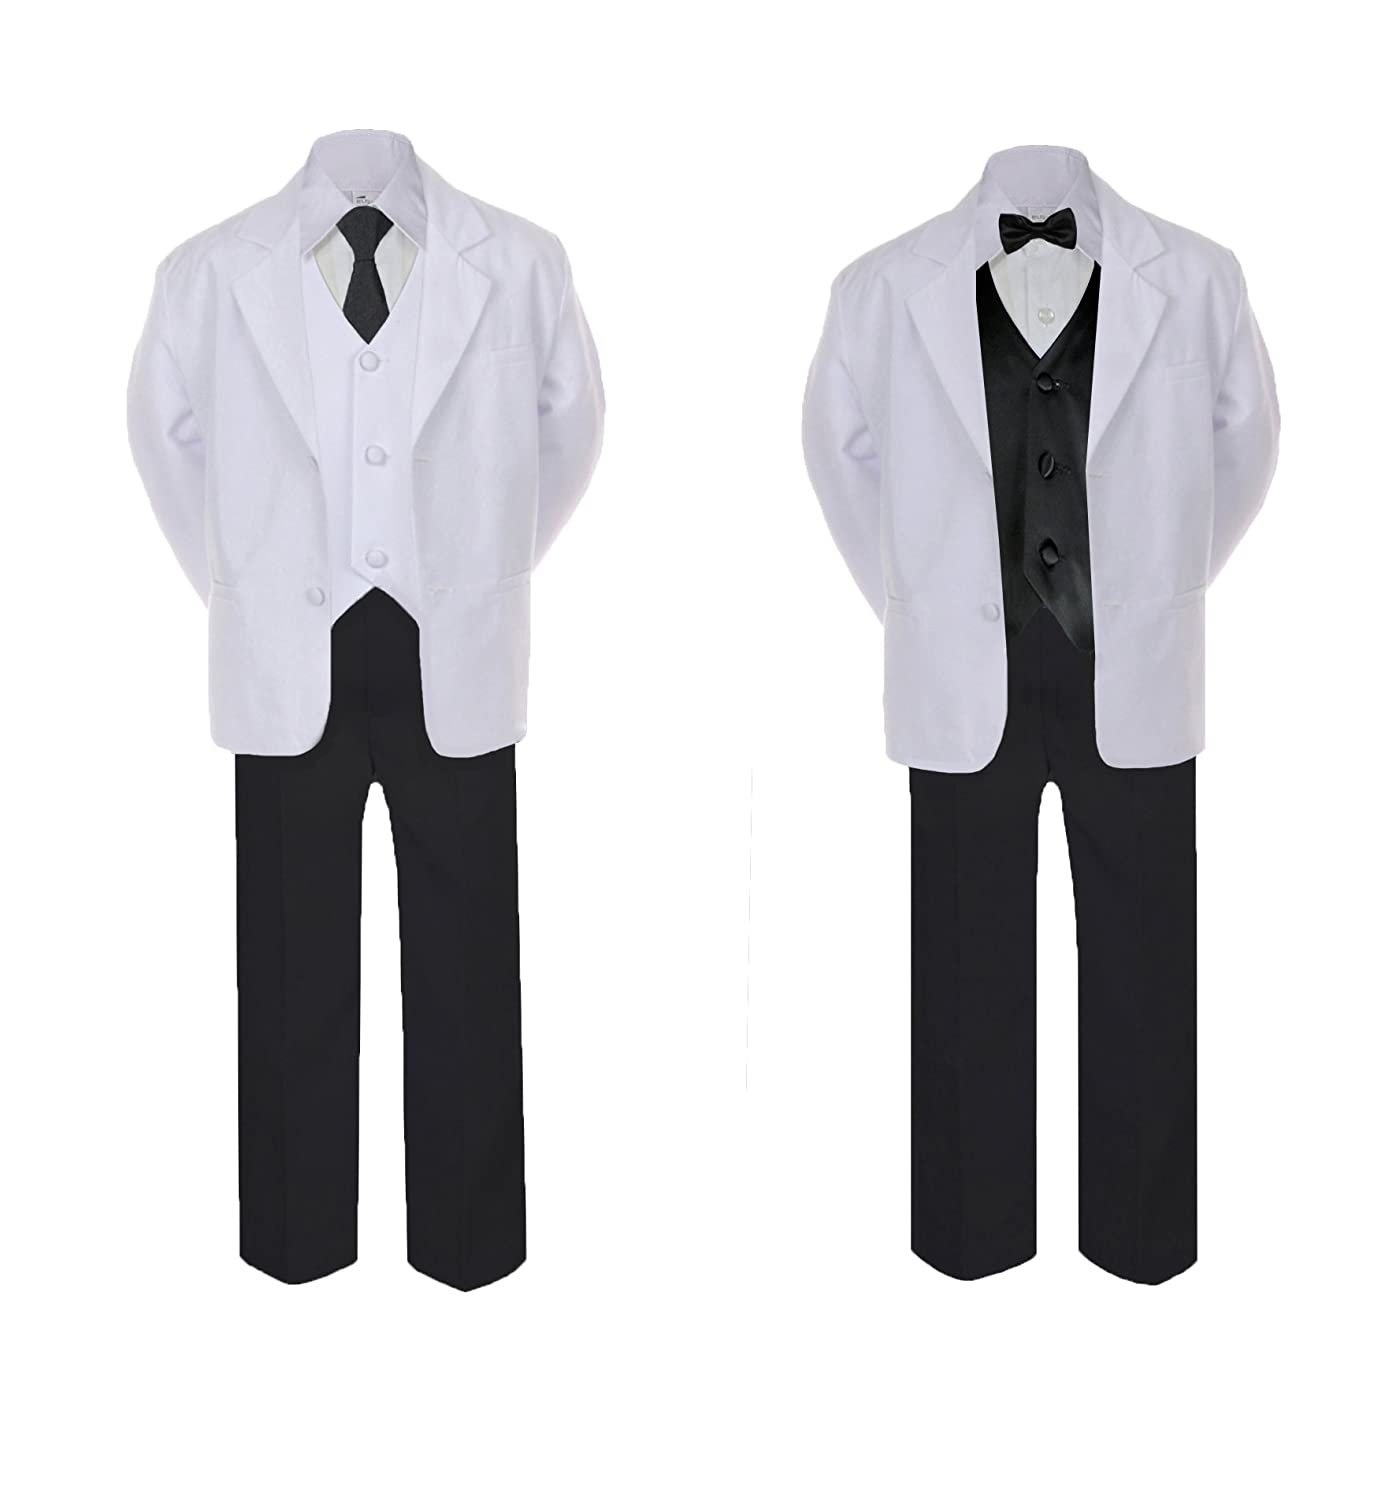 Unotux 5-7pc Formal Black White Suit Set Black Bow Tie Neck Vest Boy Baby Sm-20 Teen